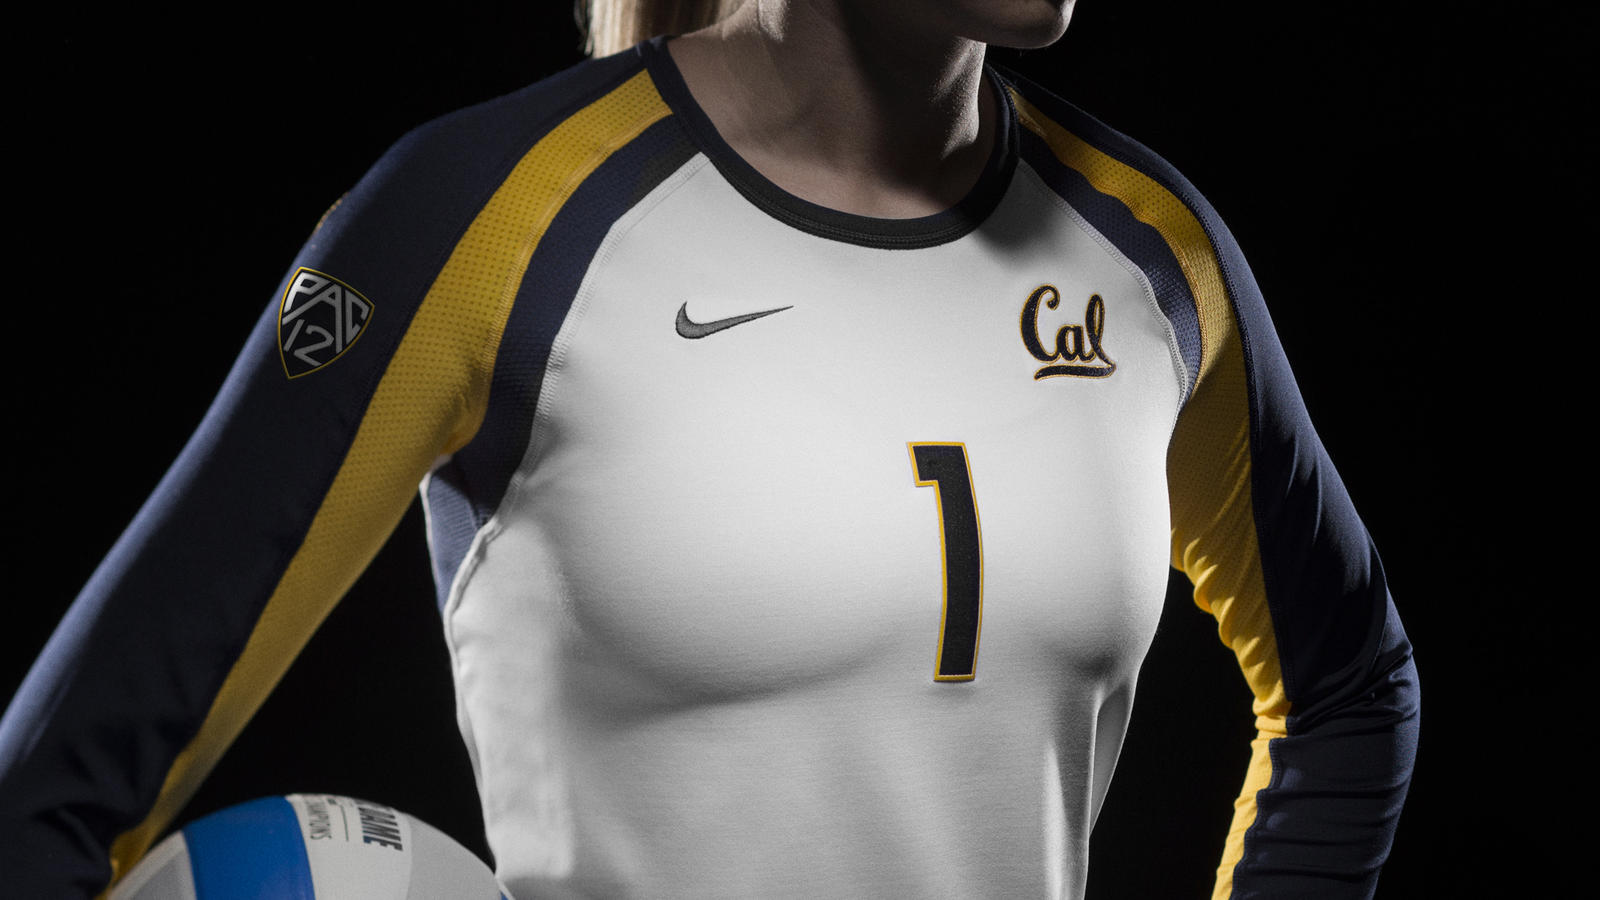 nike-cal-brand-identity-volleyball-01